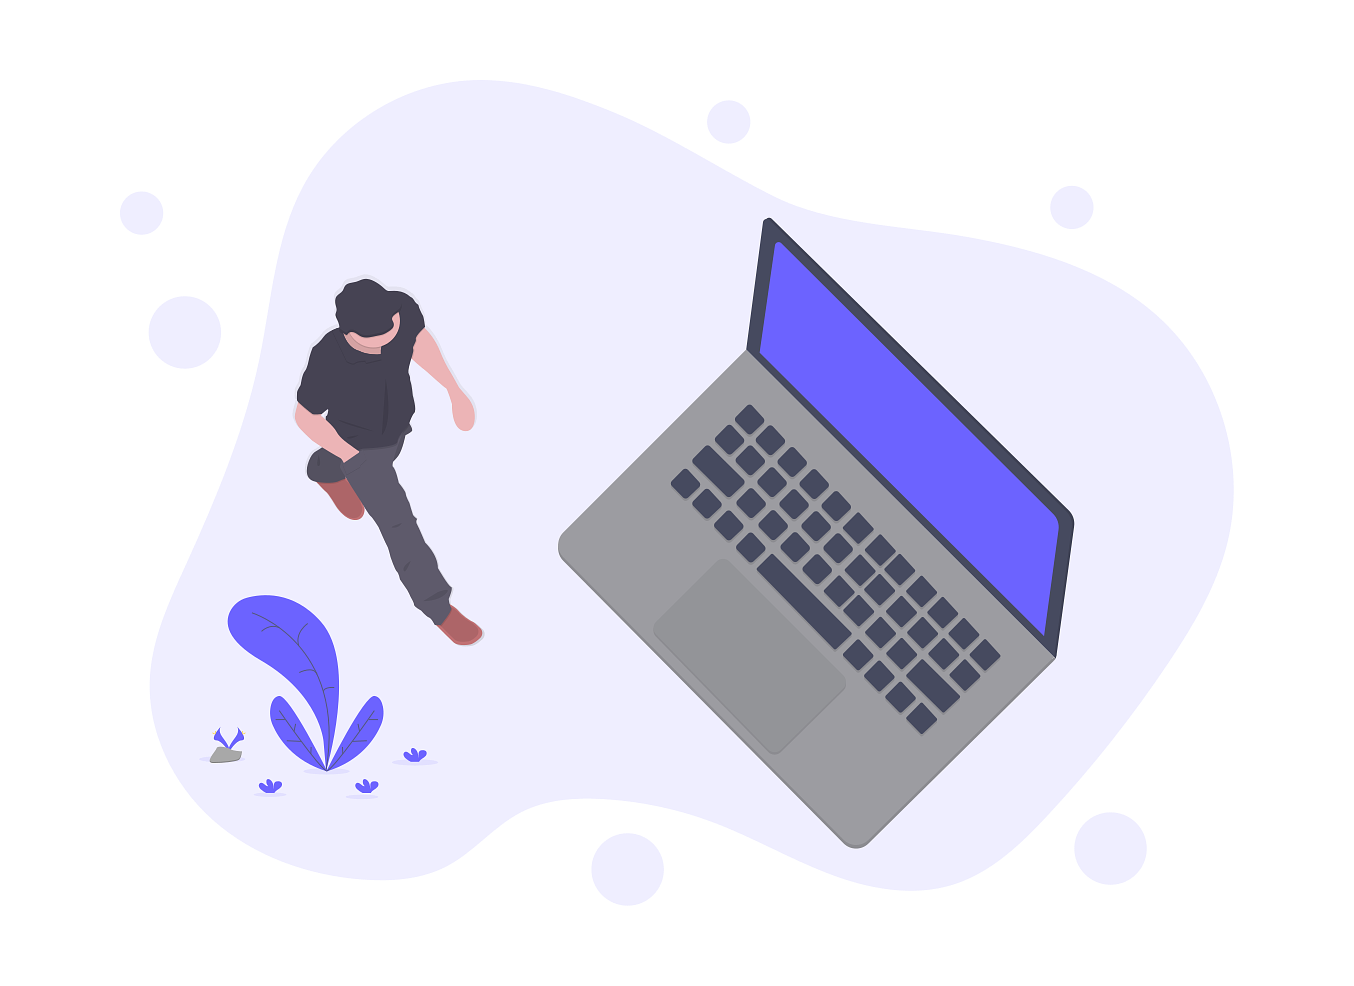 an illustration of a product manager walking toward a laptop showing startup responsibilites